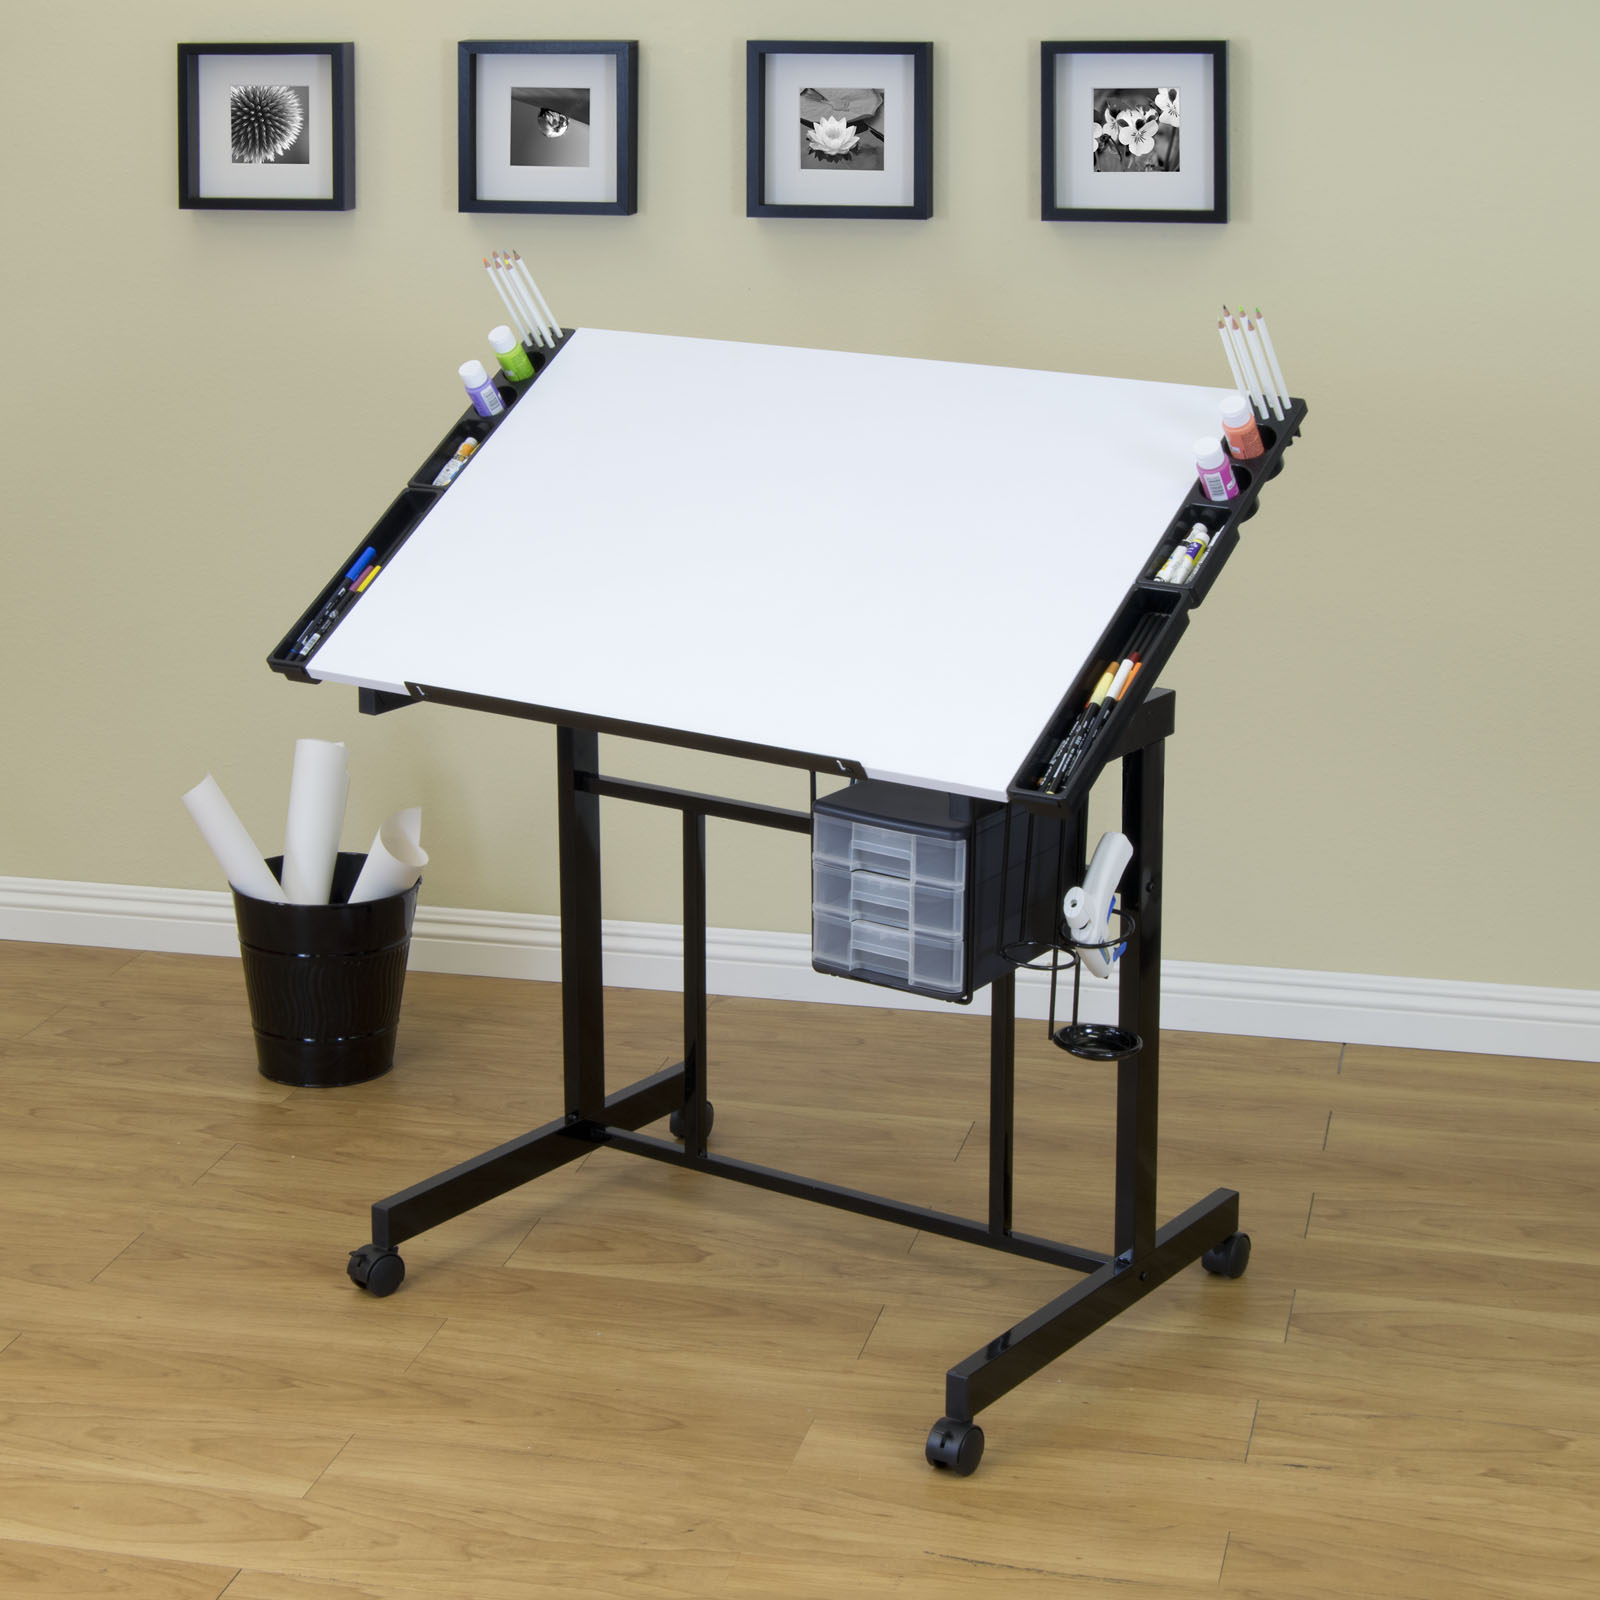 Deluxe Mobile Craft Station With Adjustable Top And Supply